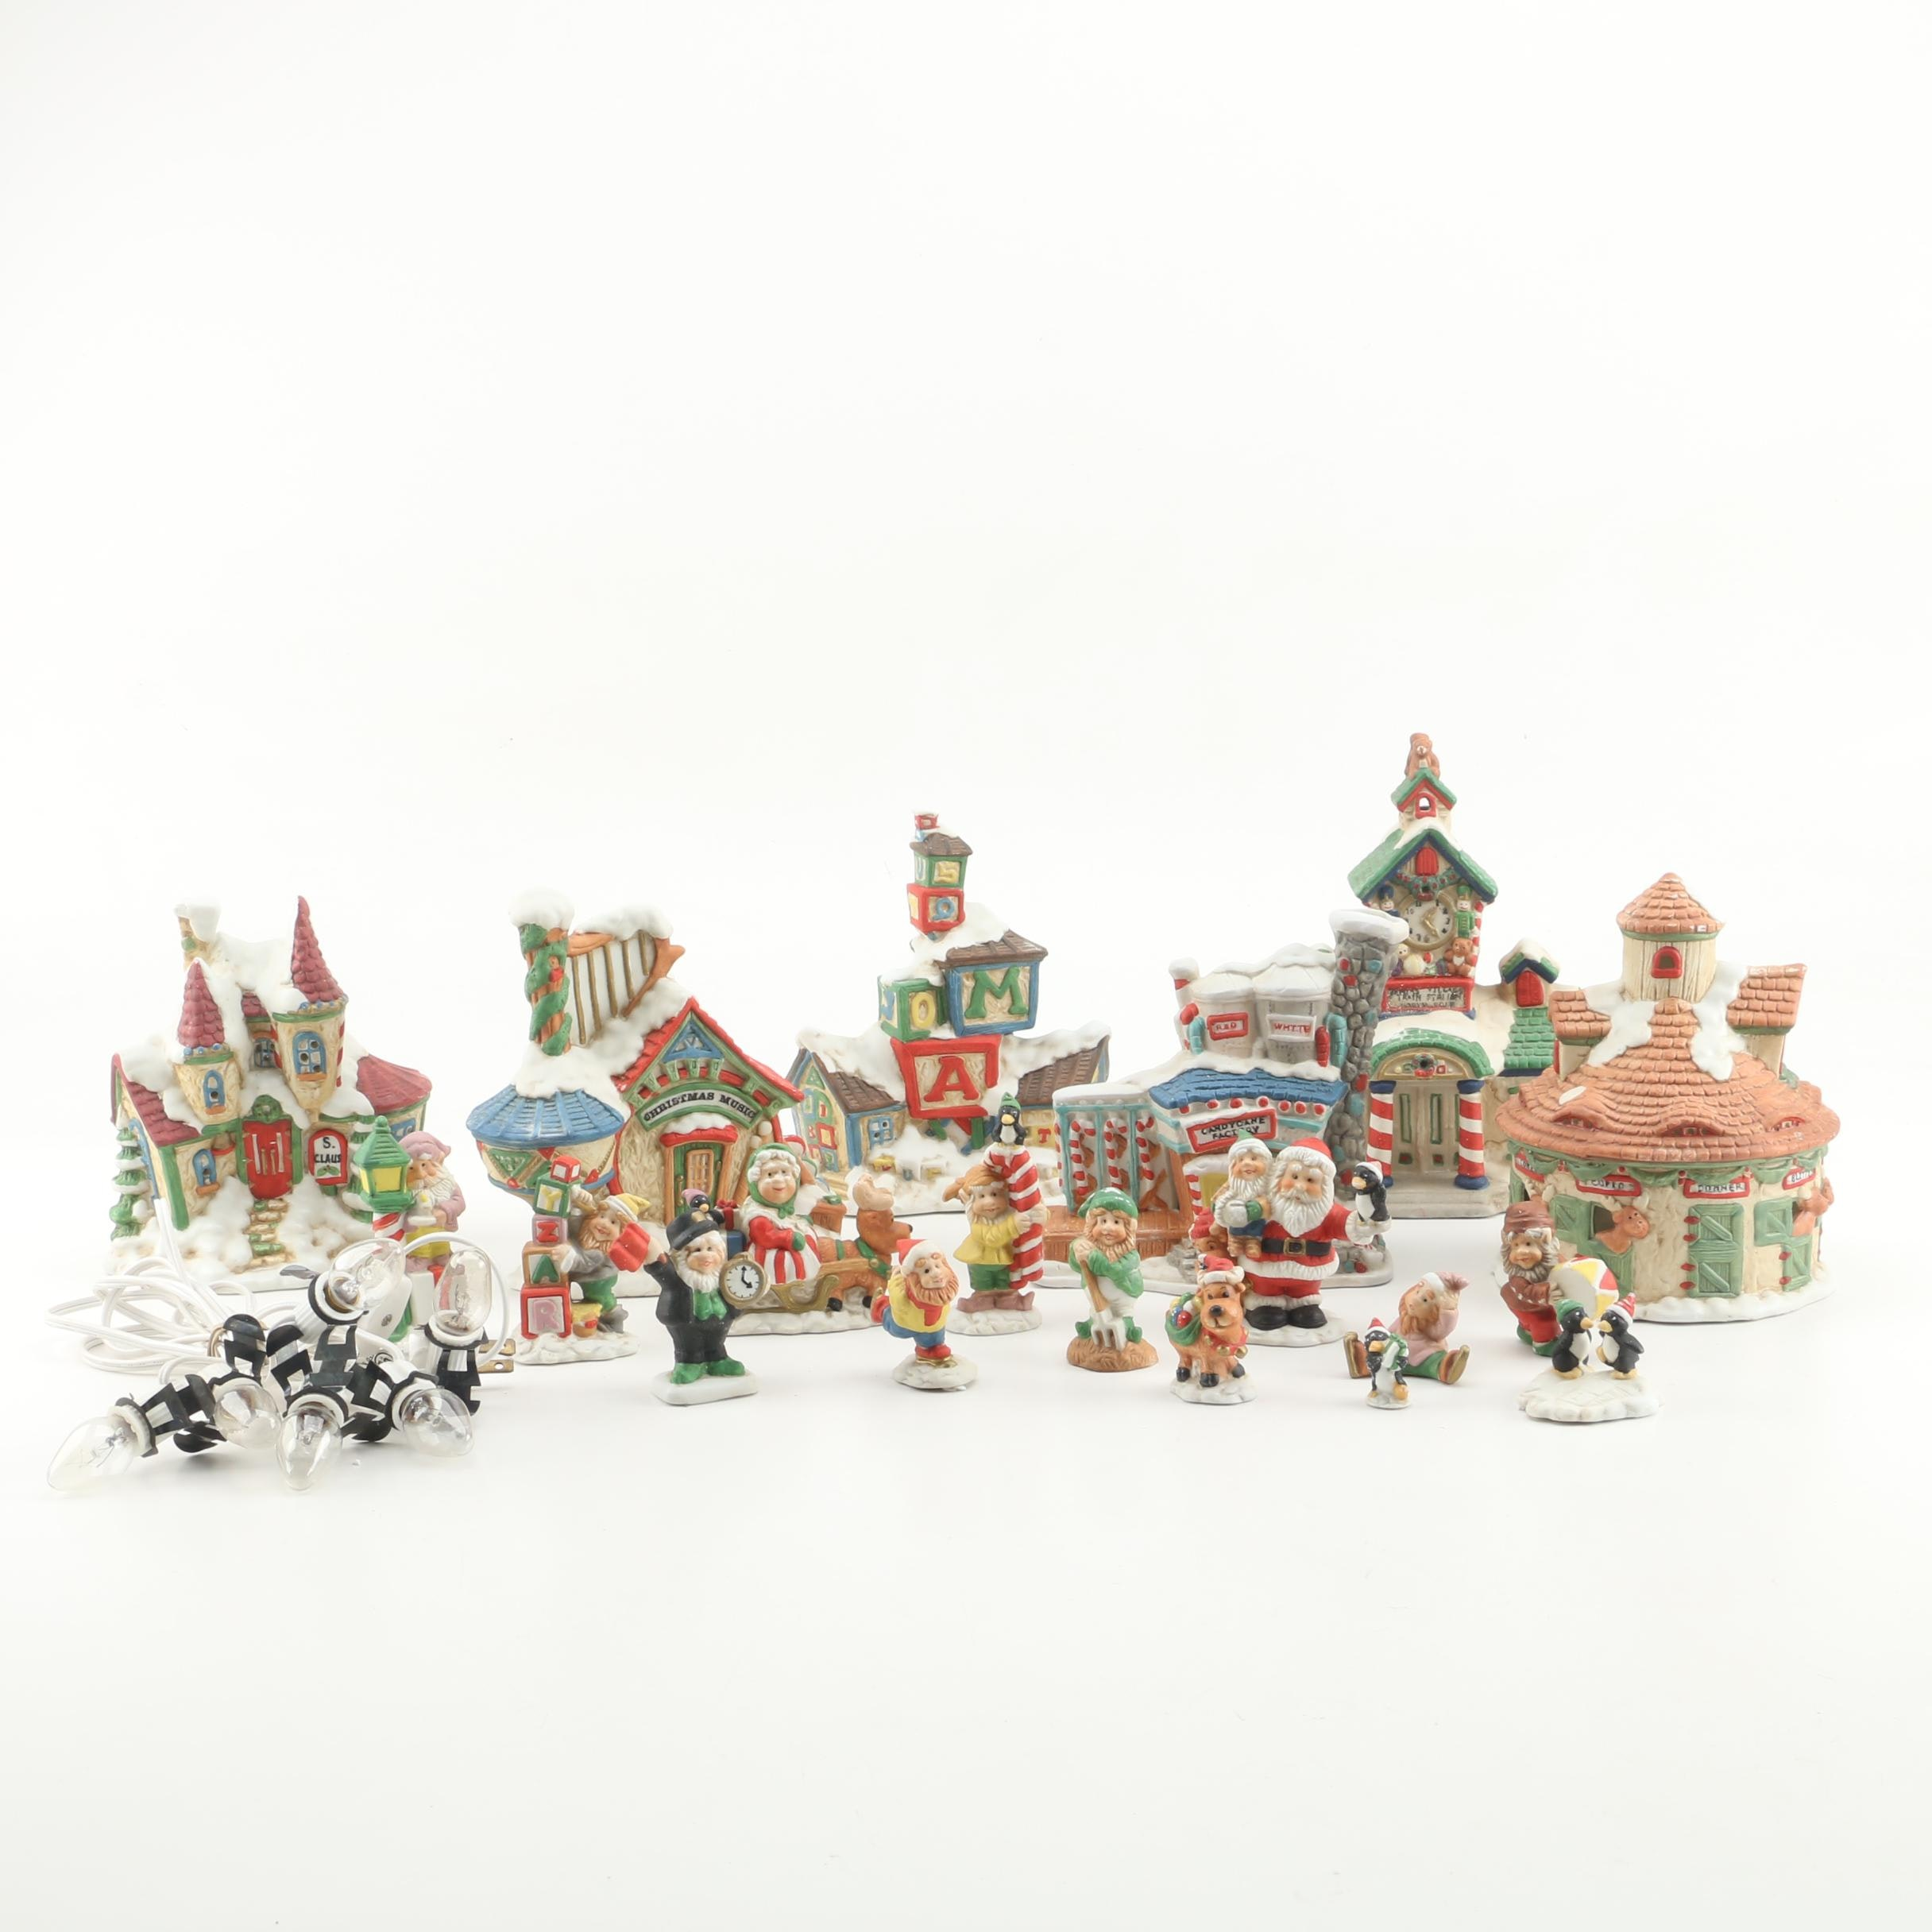 1990s Mercuries Christmas Village and Figurines